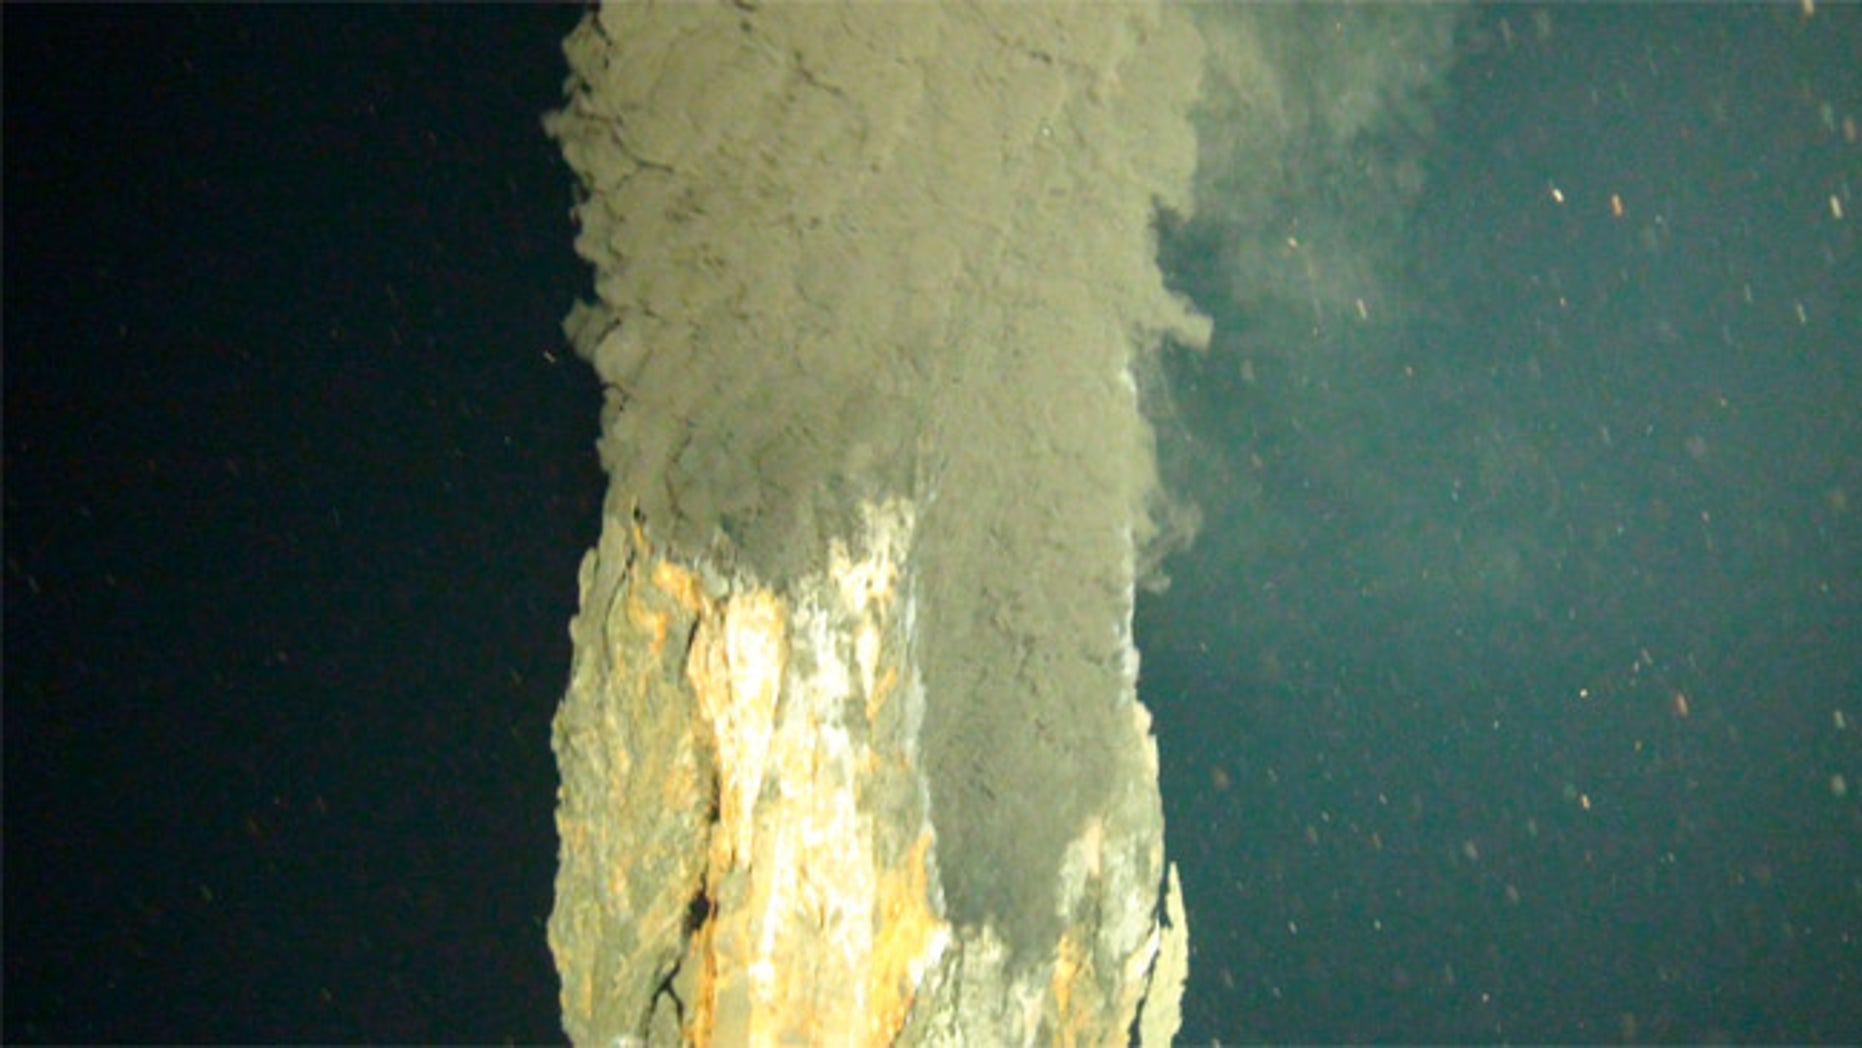 First photograph of the world's deepest known 'black smoker' vent, erupting water hot enough to melt lead, 3.1 miles deep on the ocean floor in the Caribbean.